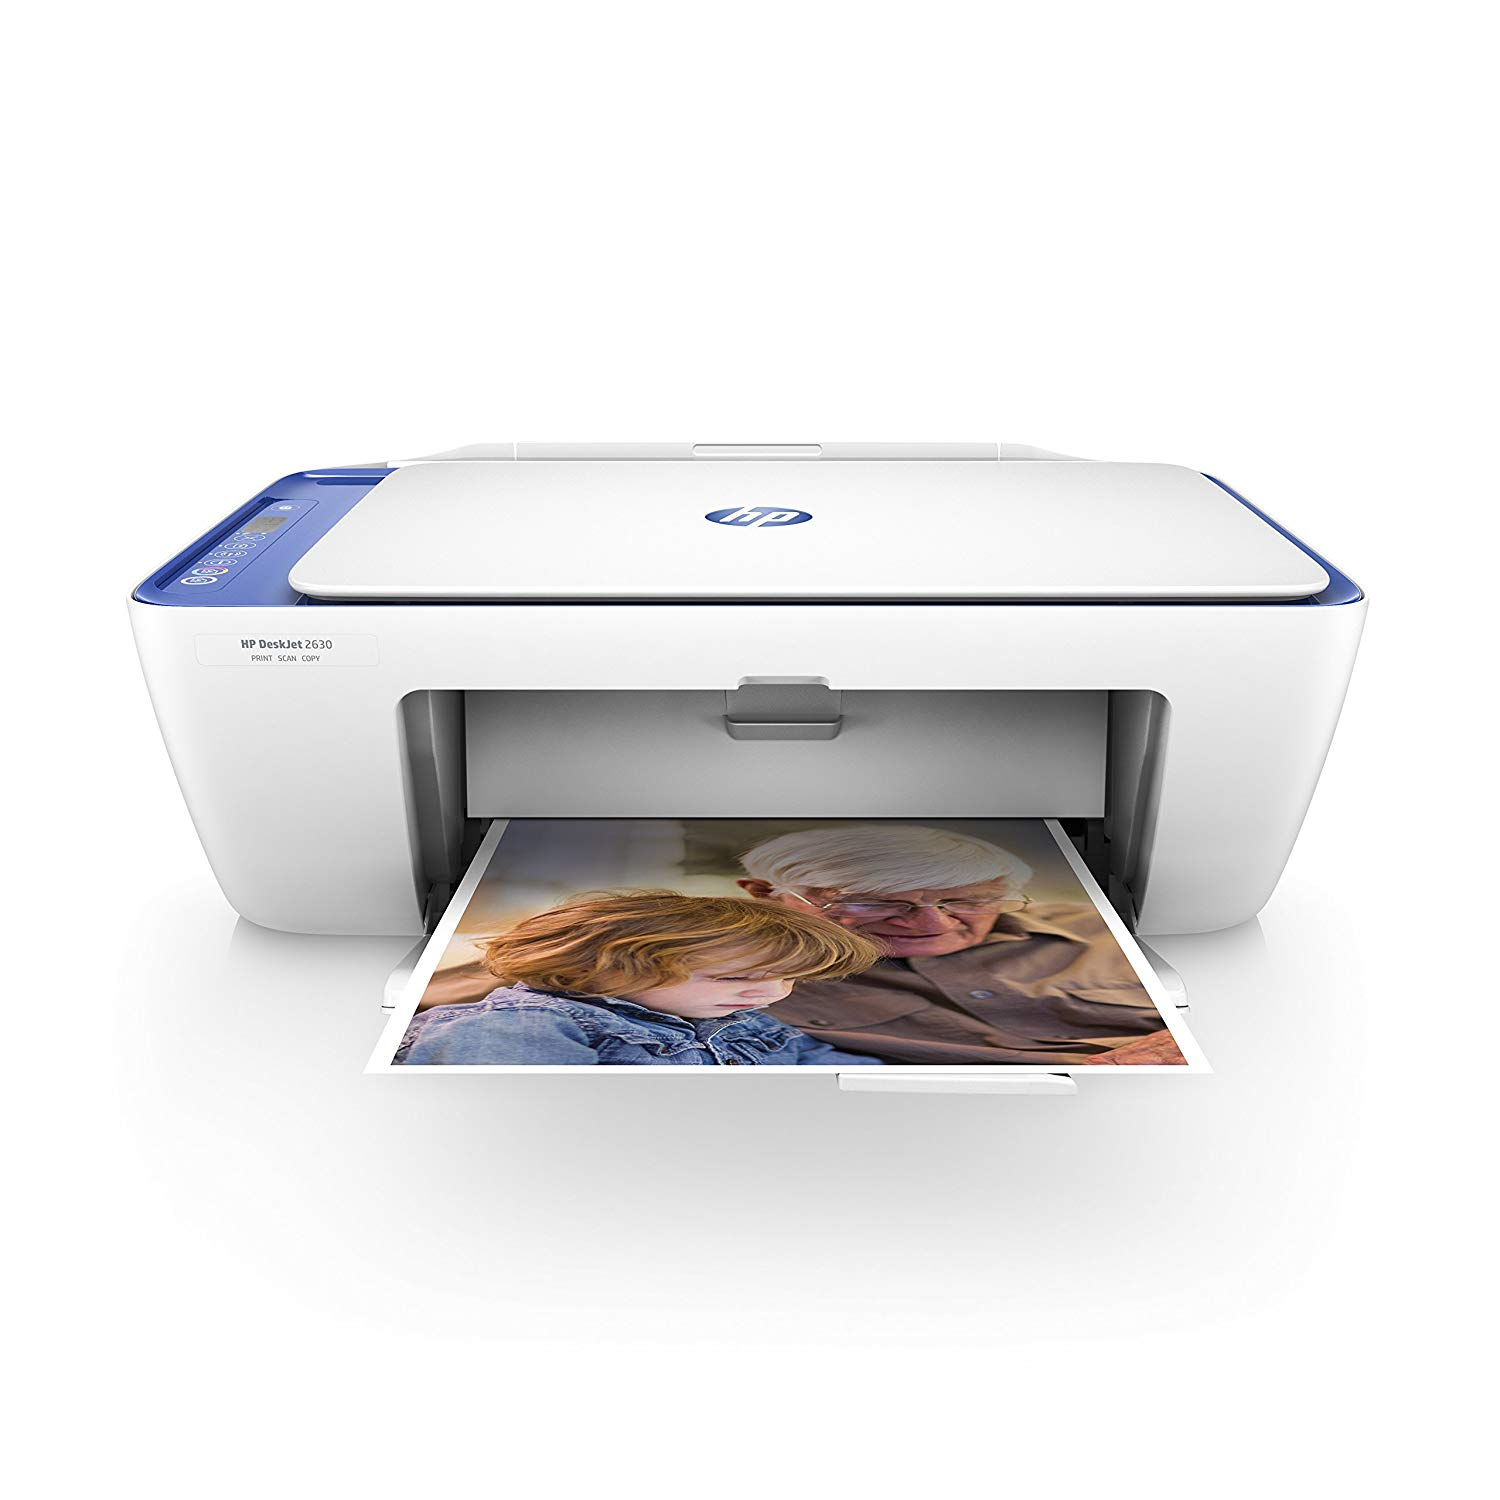 HP Deskjet 2630 All-in-One Printer – £39 at Amazon